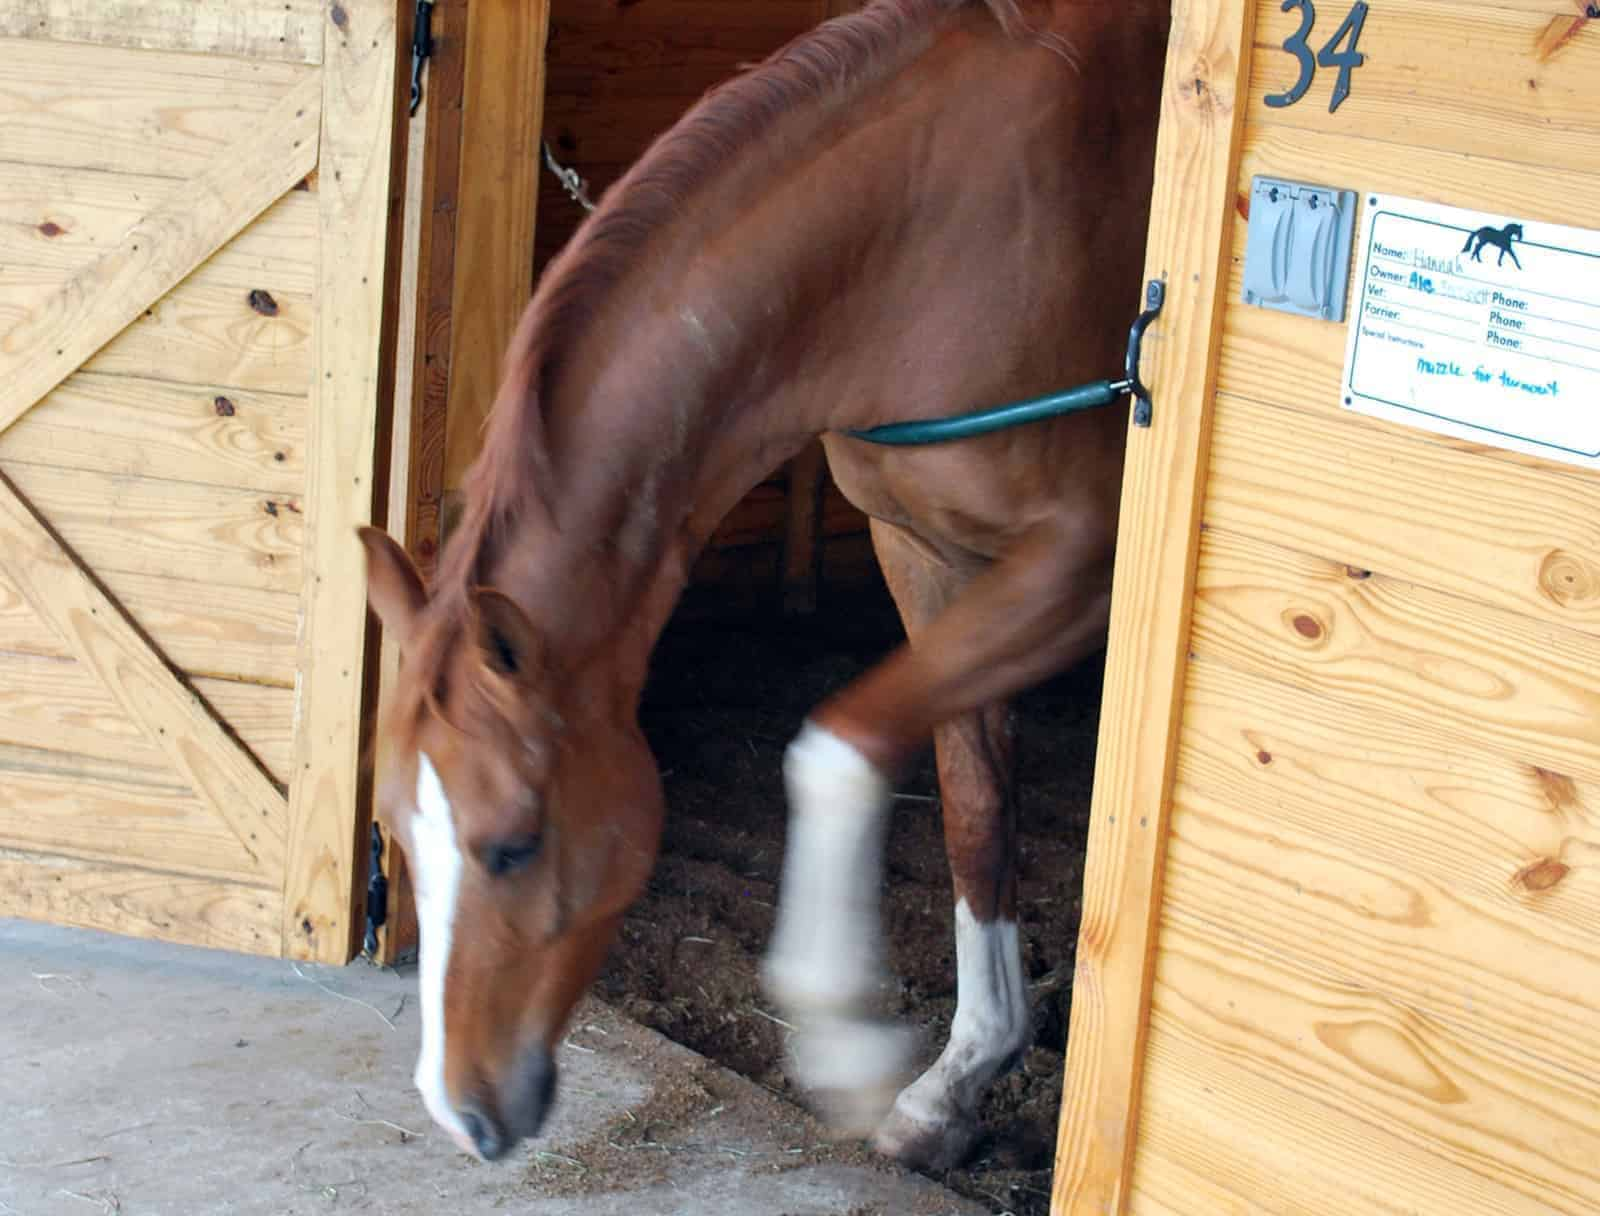 pawing in stall